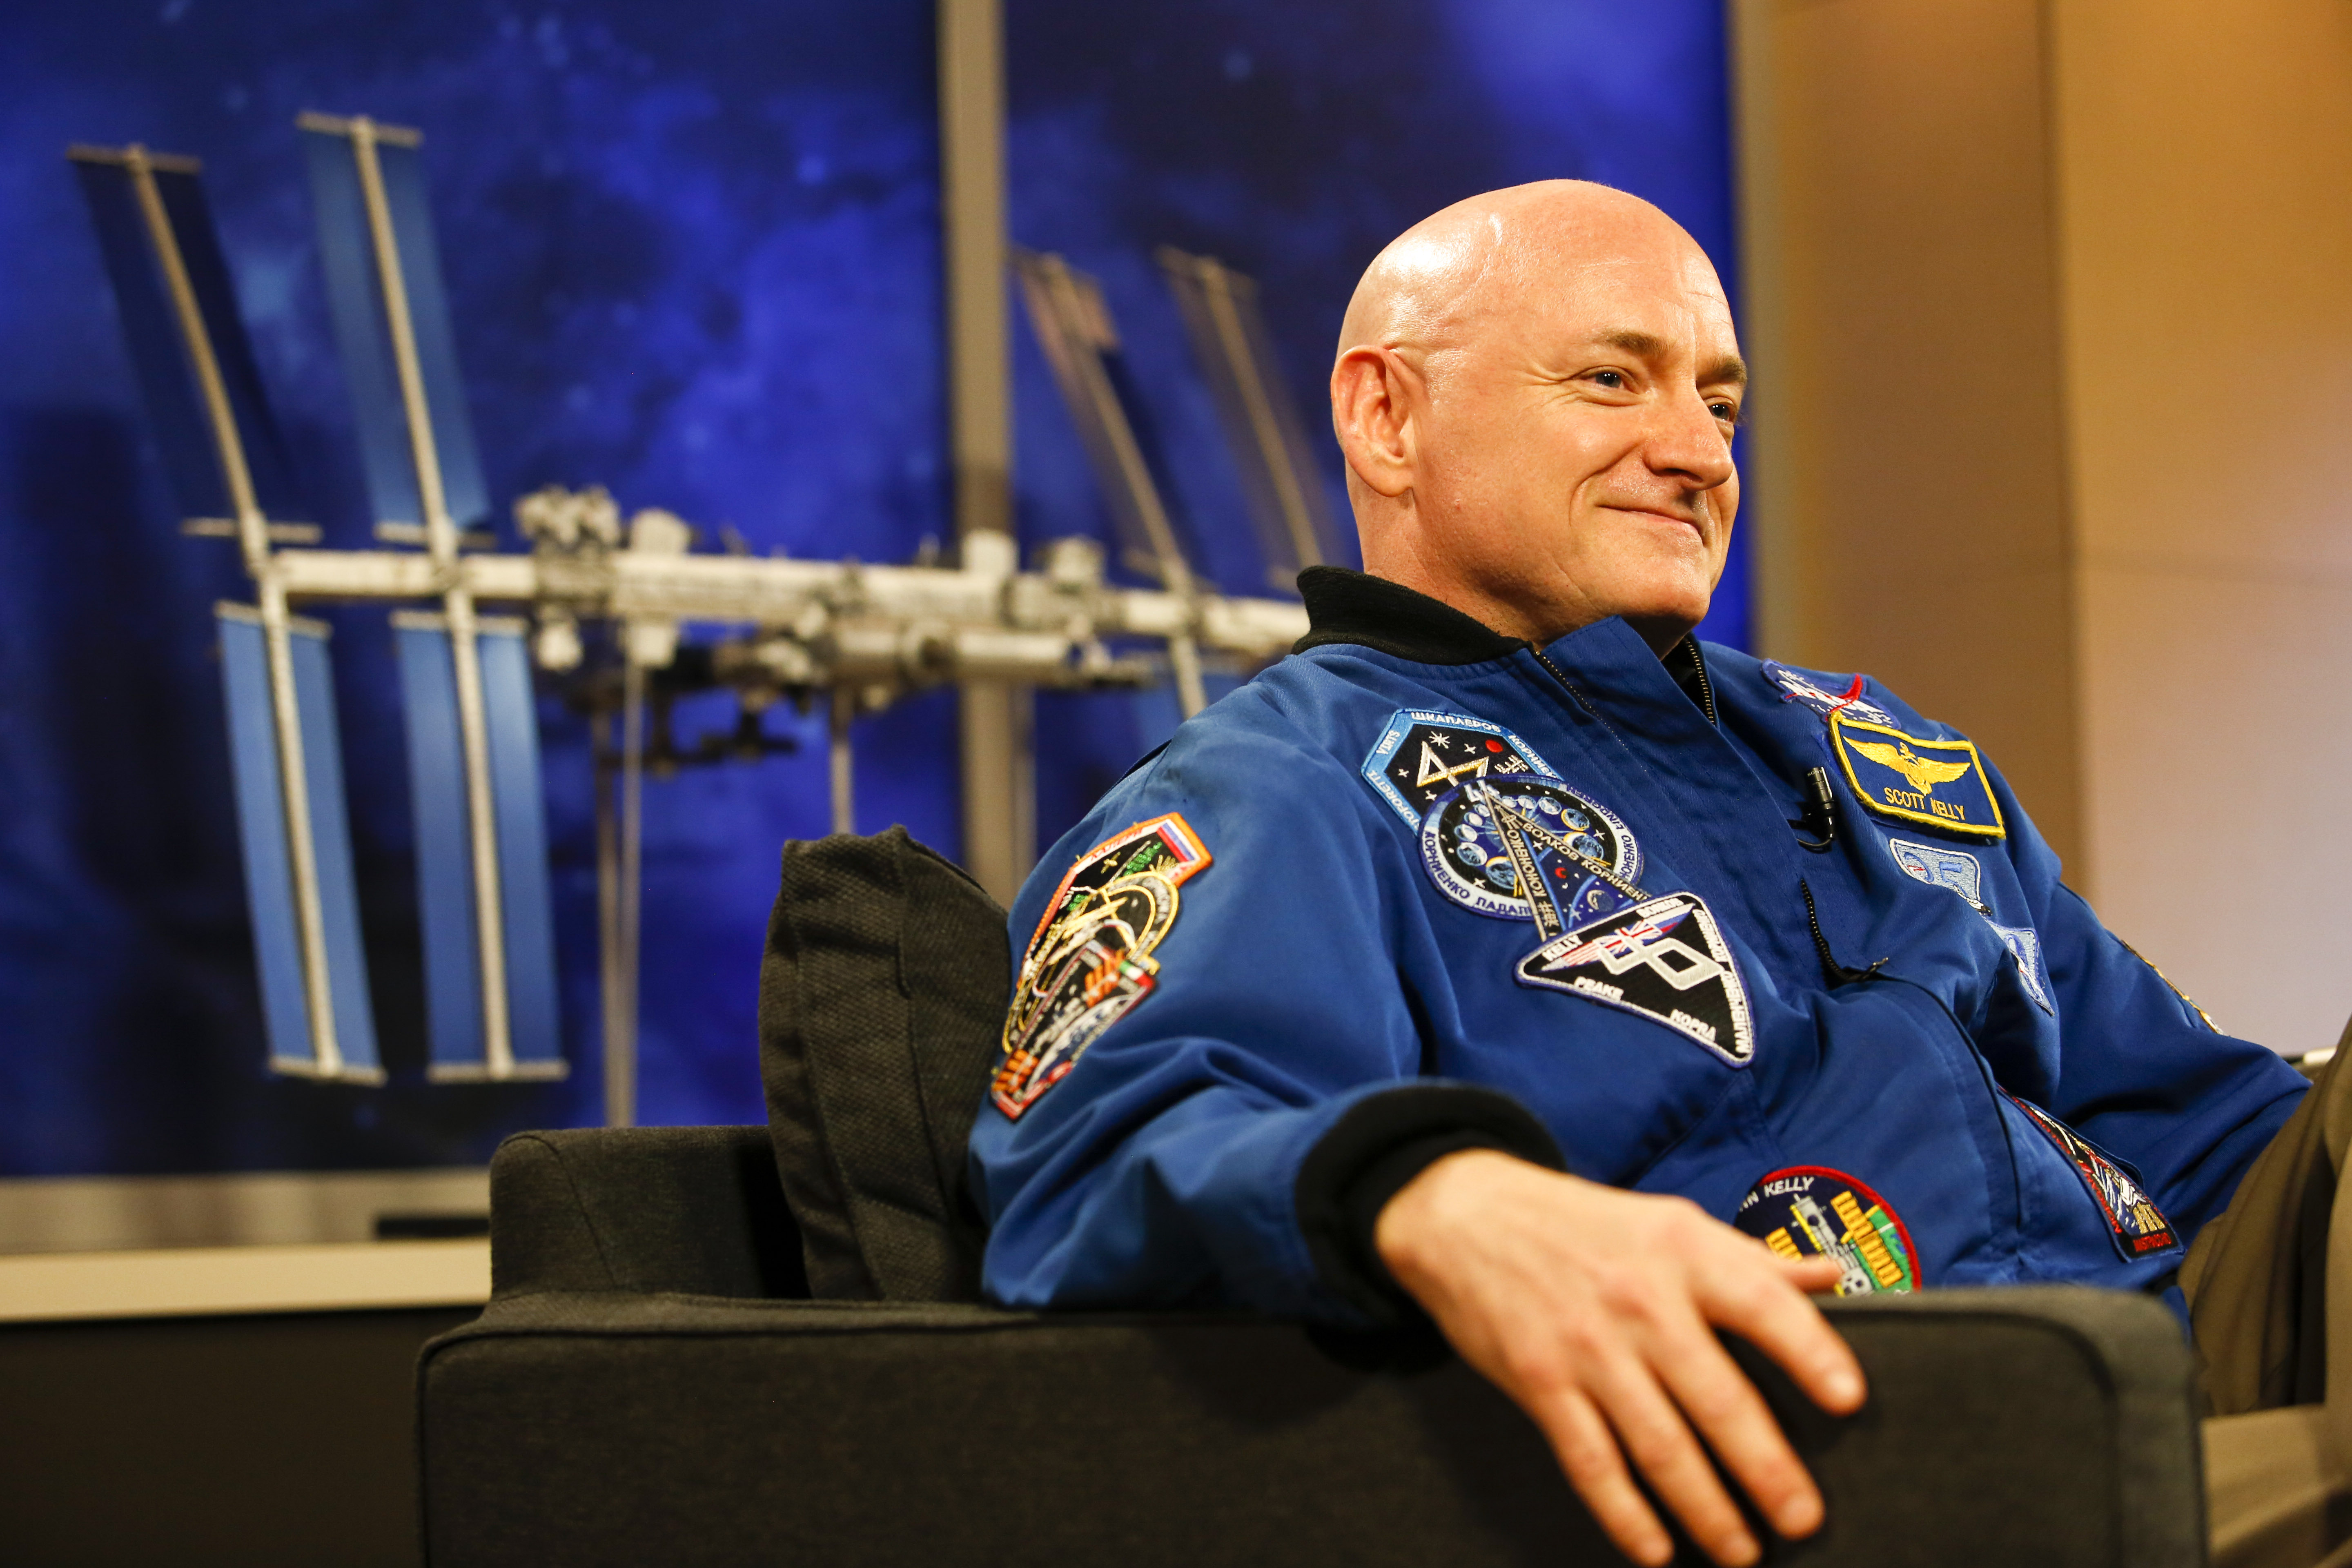 NASA Astronaut Scott Kelly speaks to the media after returning from a one year mission in space at the Johnson Space Center in Texas on March 4, 2016.